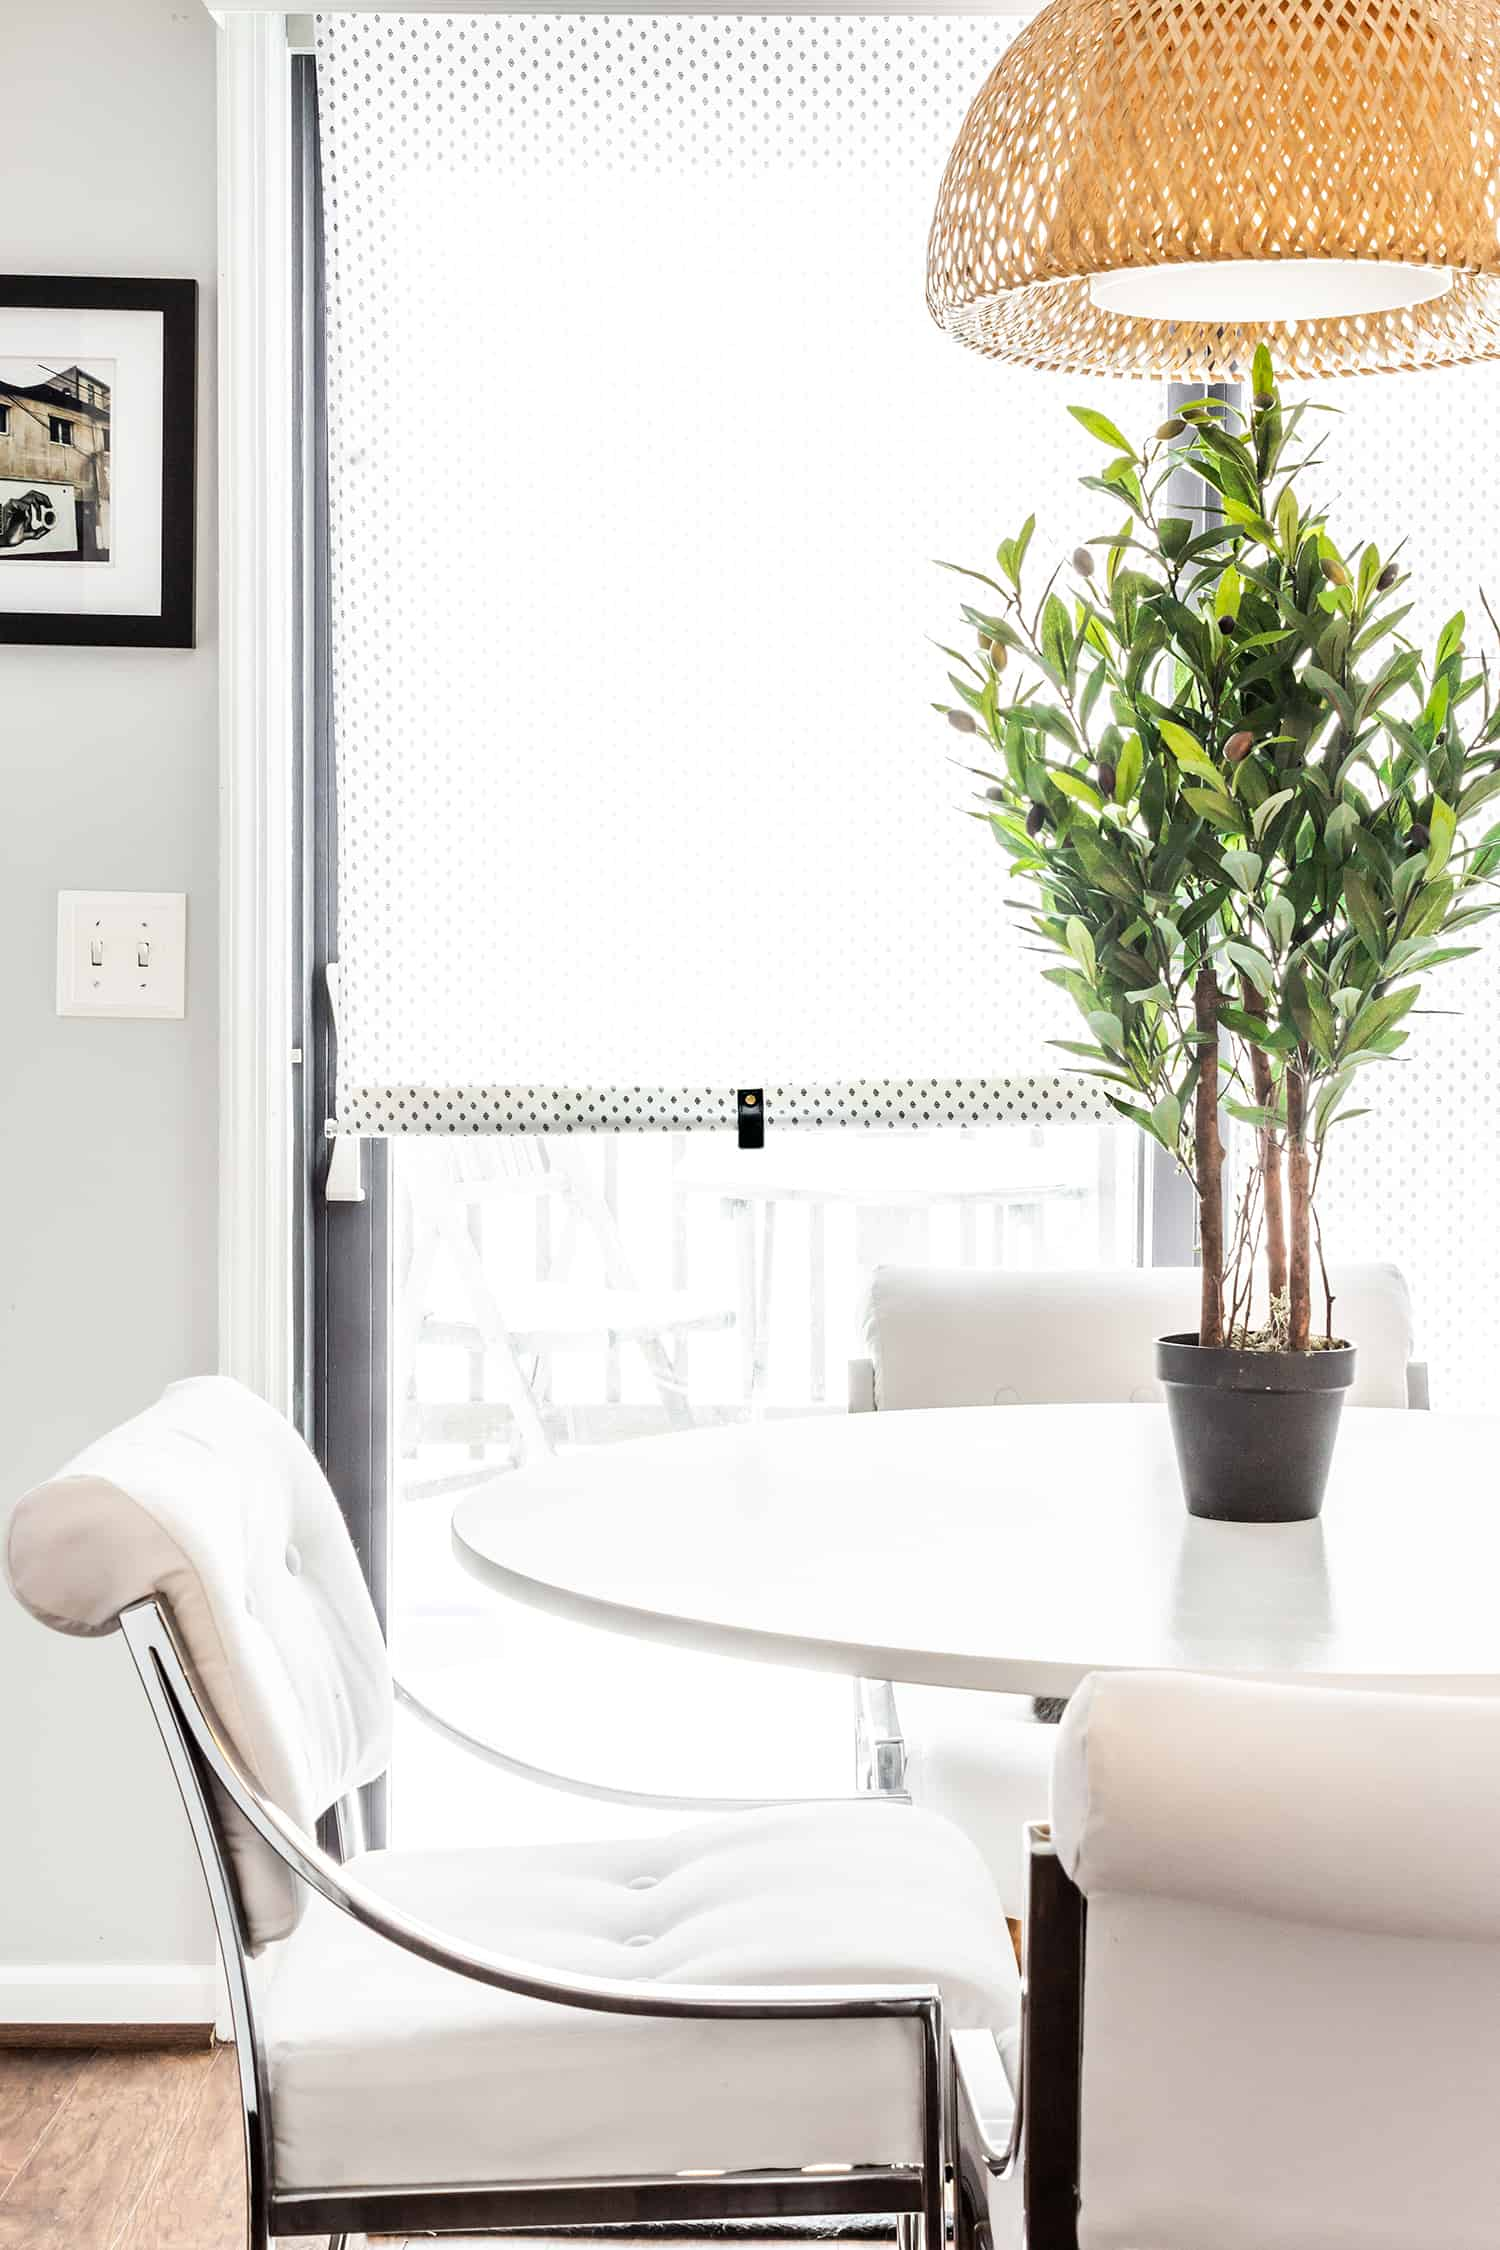 DIY to create a pull for a window roller shade, IKEA hack, window treatment, window shade pull, pull down roller blind.